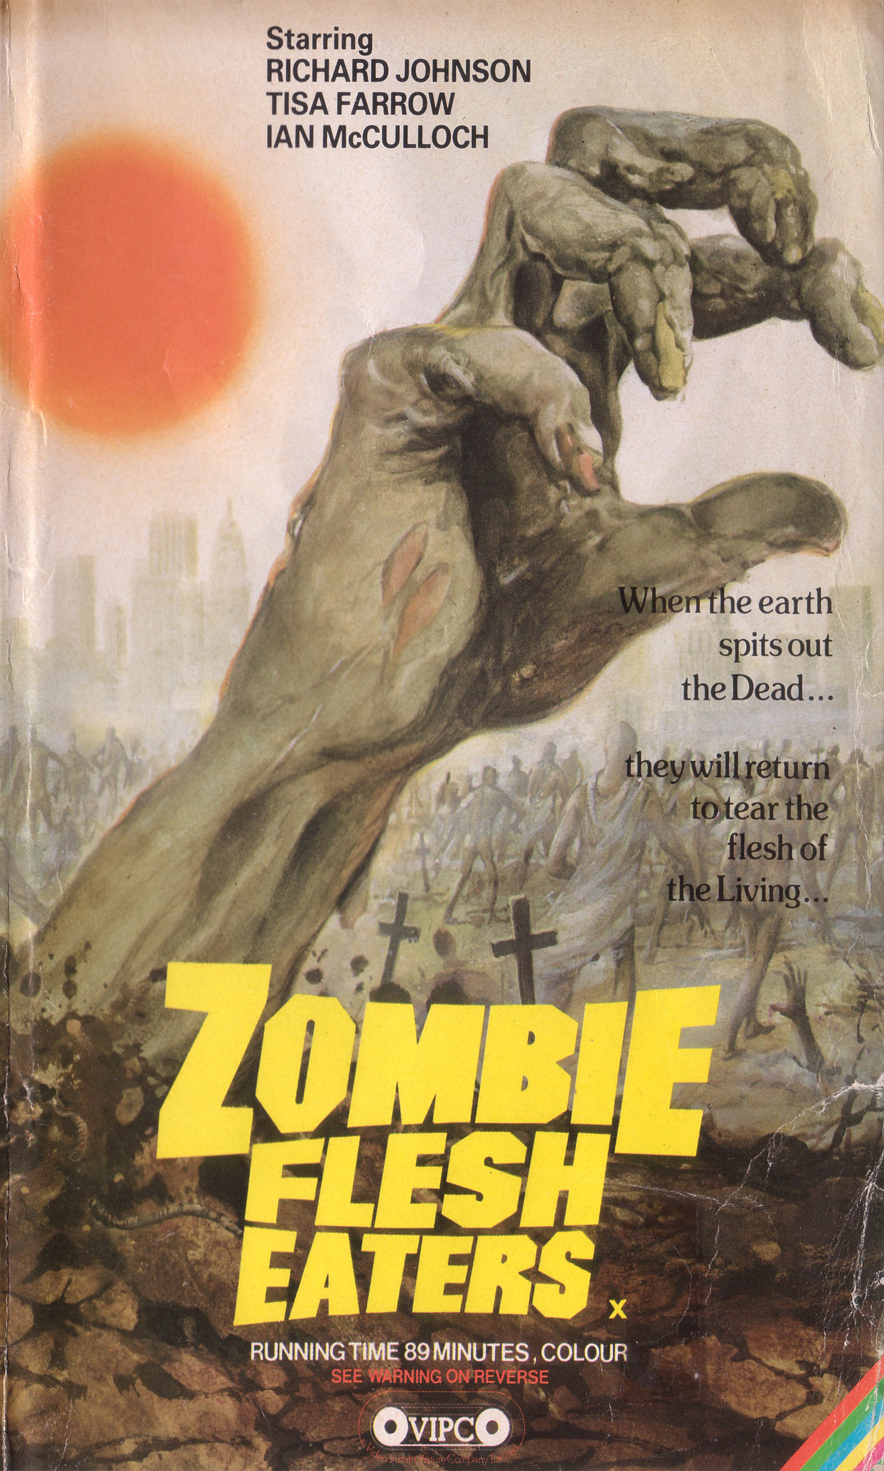 zombie-flesh-eaters-cropped.jpg